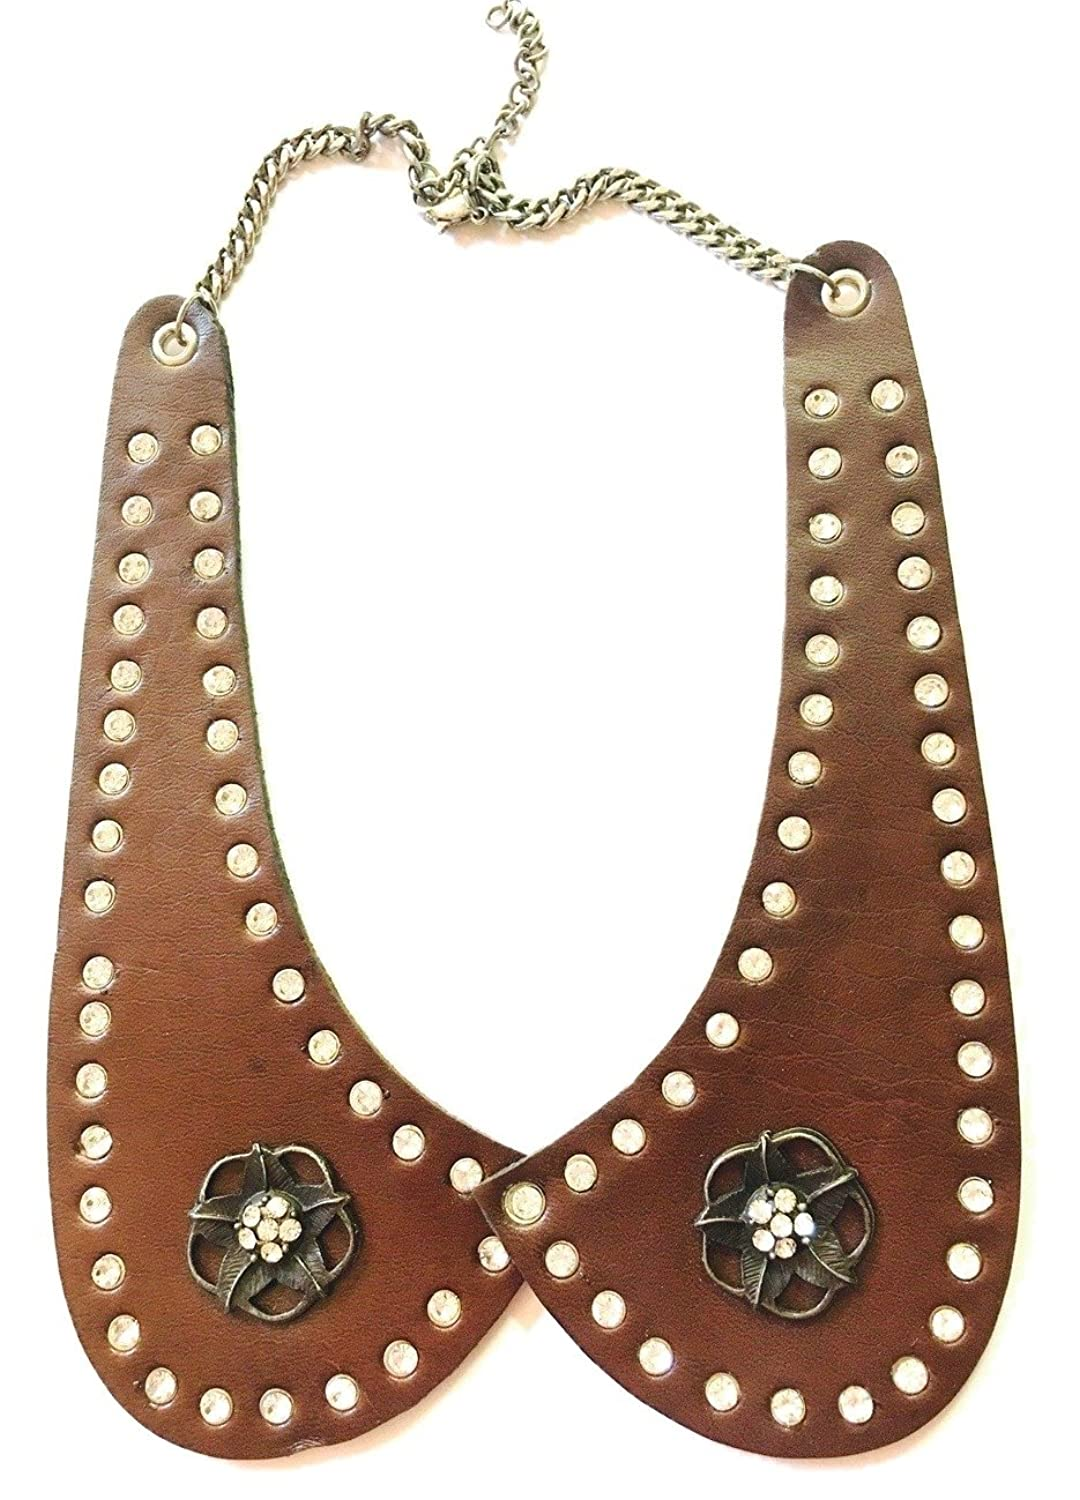 Handmade Brown Leather Metal Floral Design Collar Necklace - DeluxeAdultCostumes.com